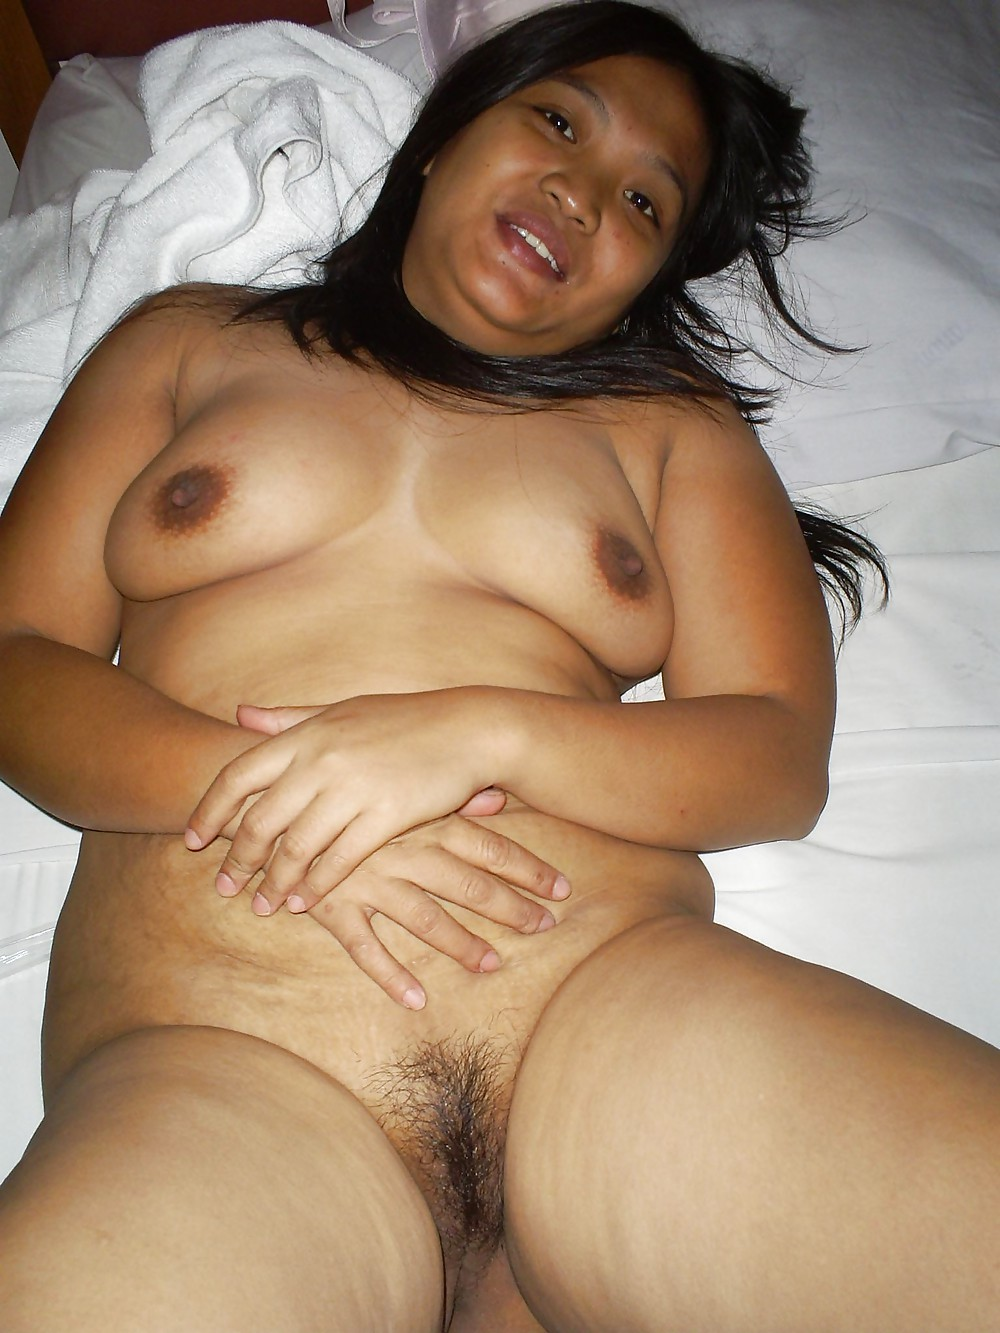 Indonesia sex mom